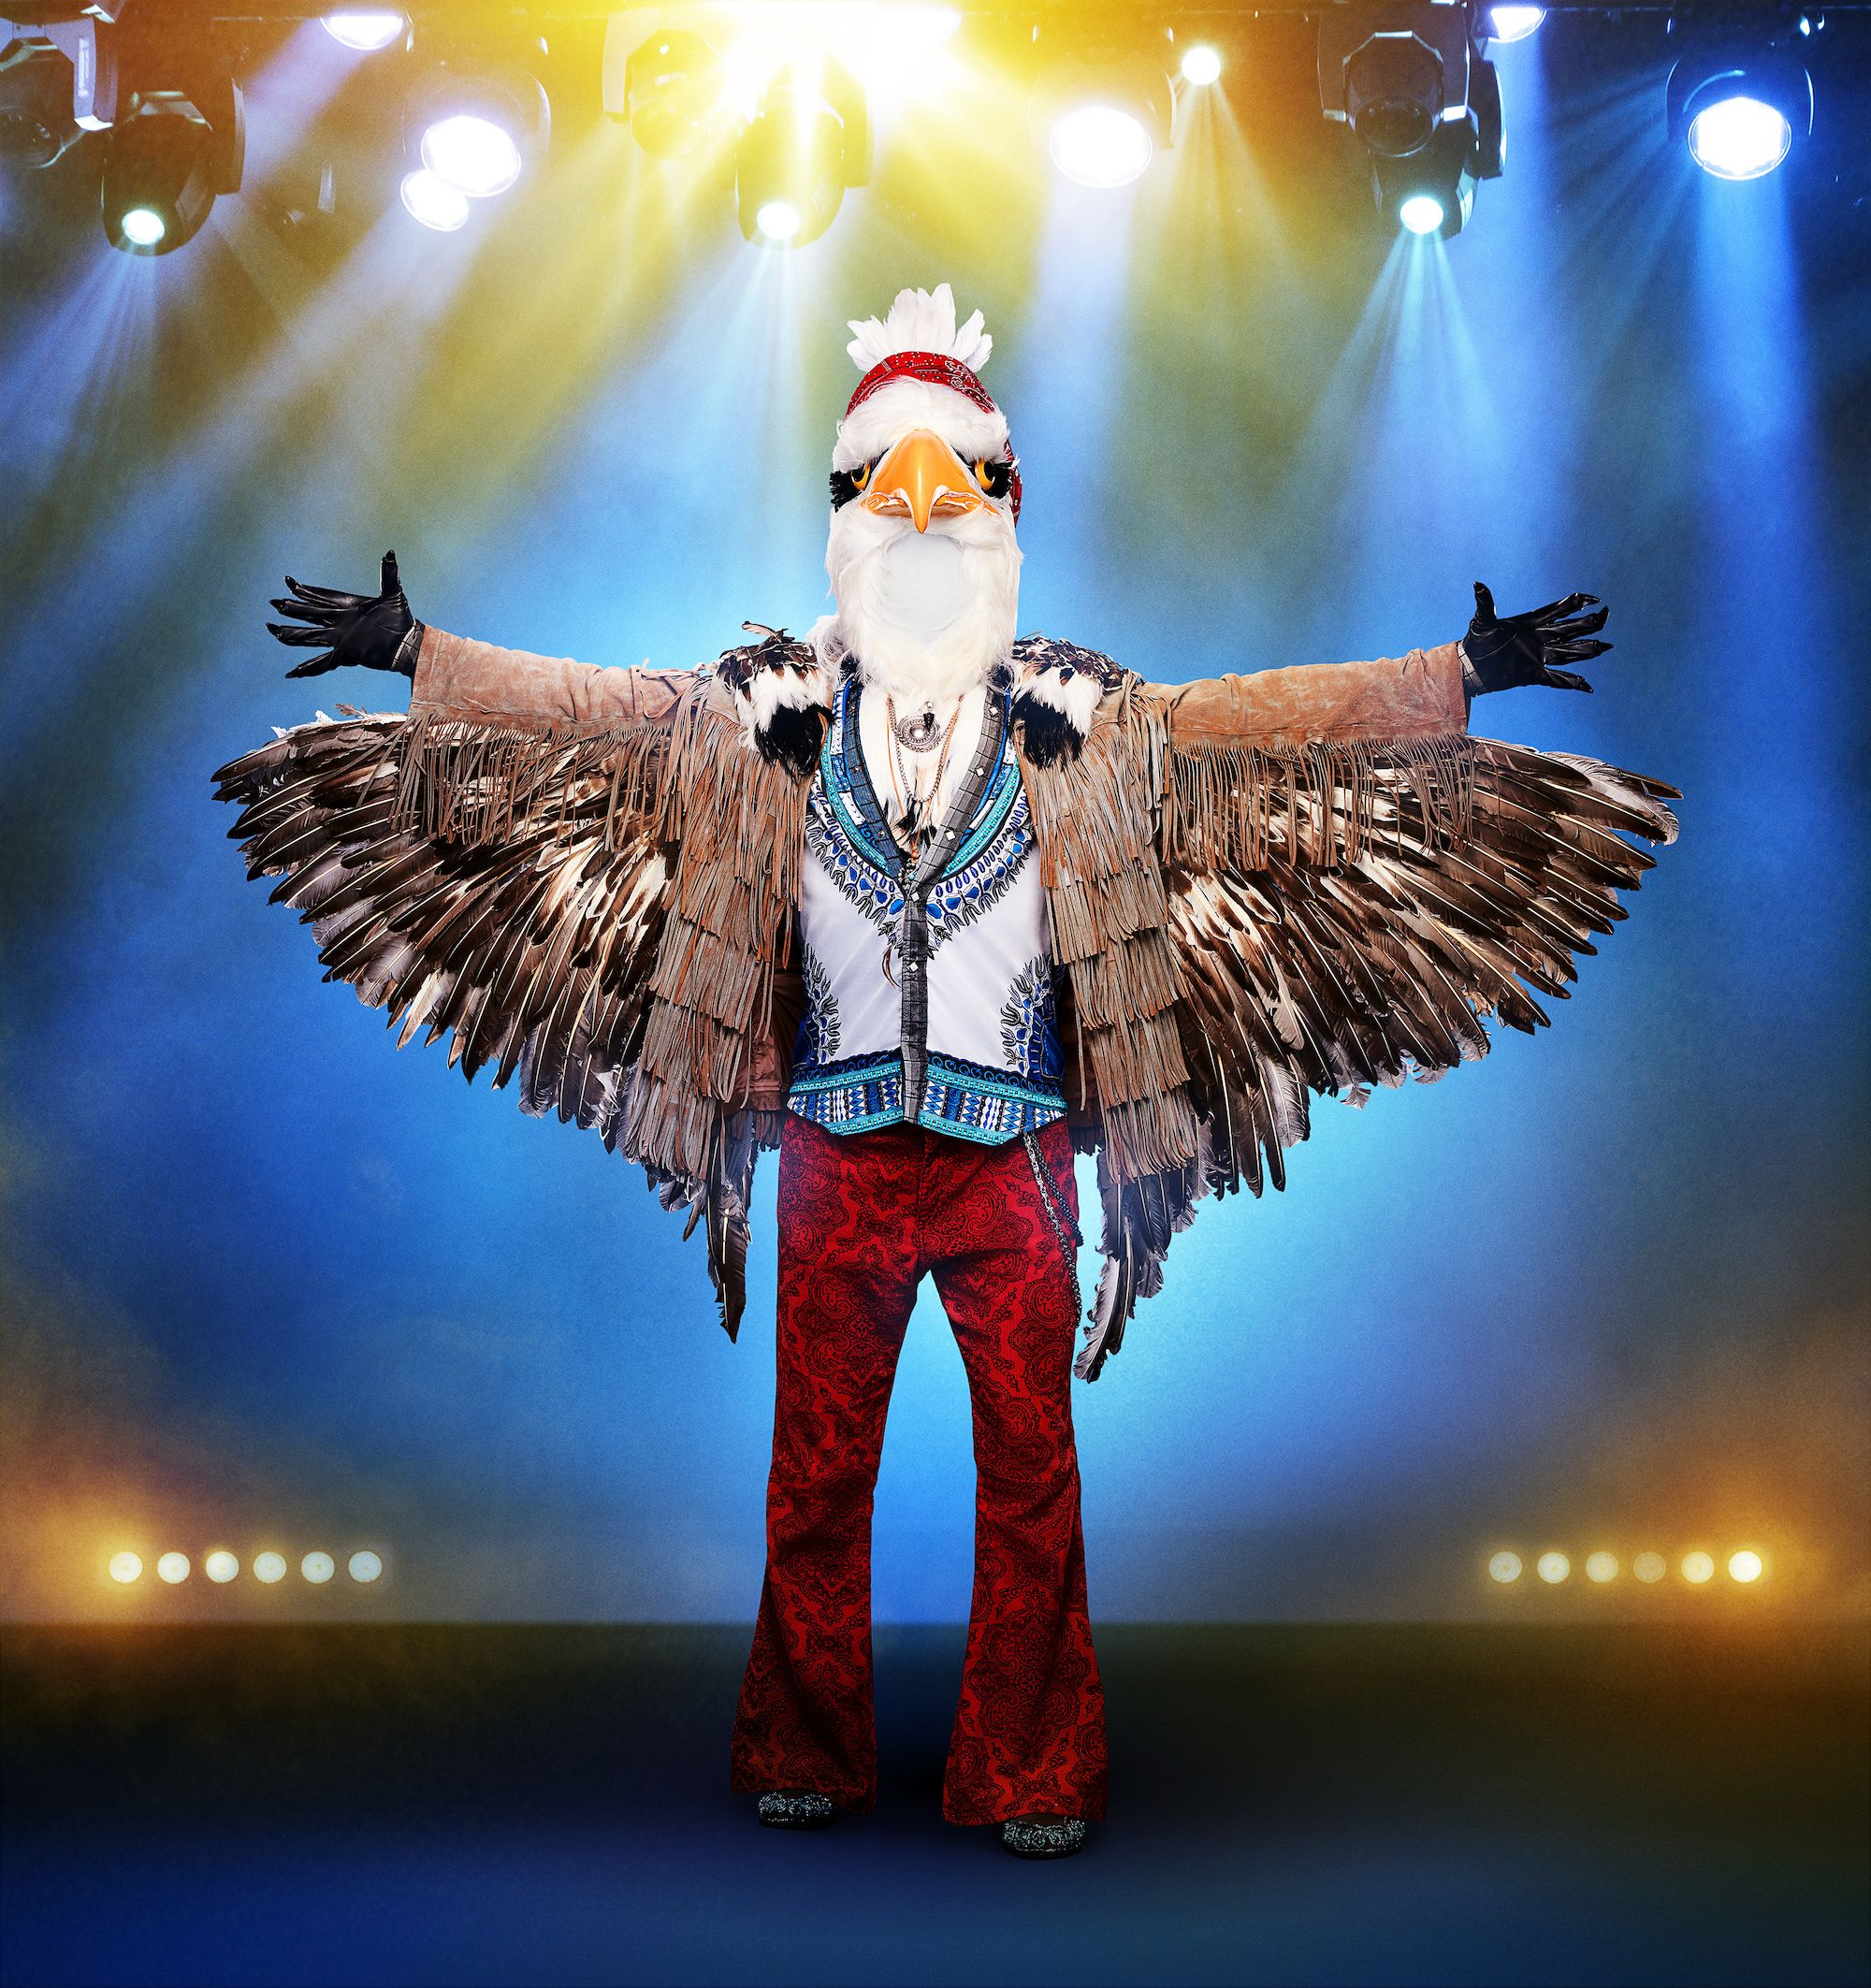 Who Is the Eagle on 'The Masked Singer'? This Celeb Has Been Unmasked